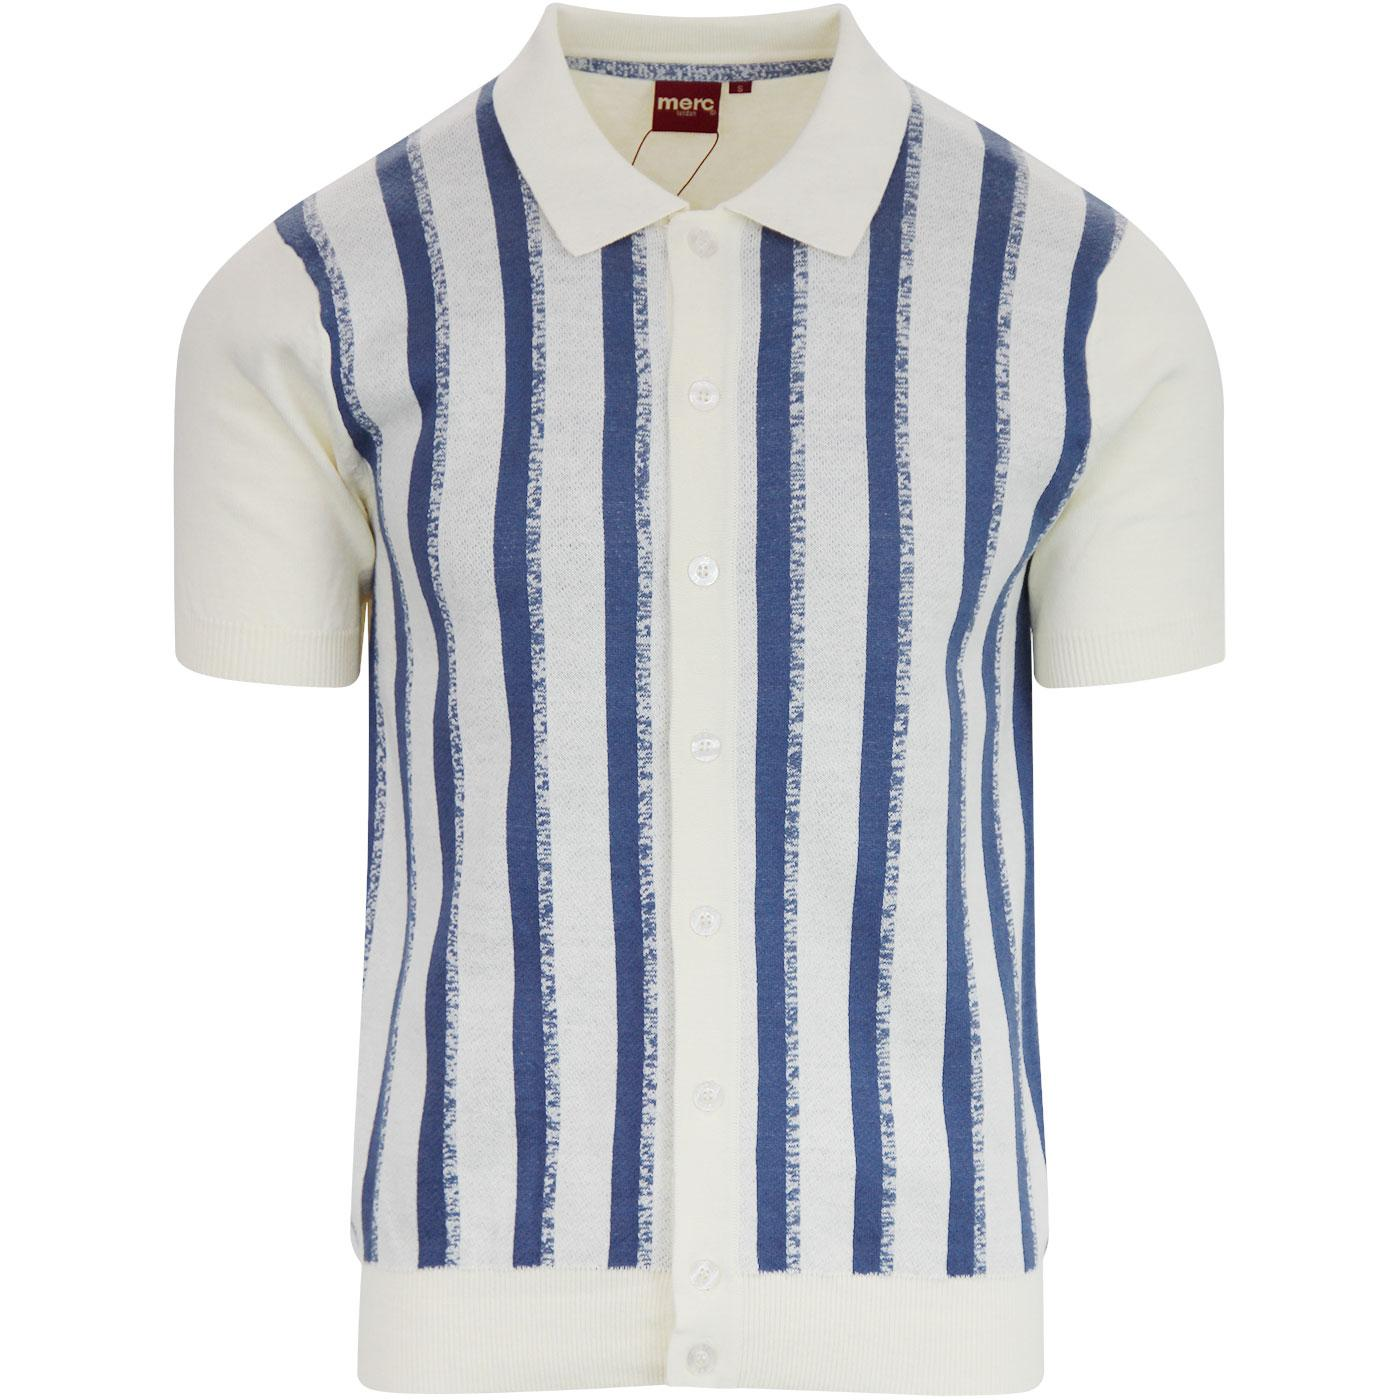 Wilmot MERC Retro Mod Stripe Knit Polo Shirt CREAM